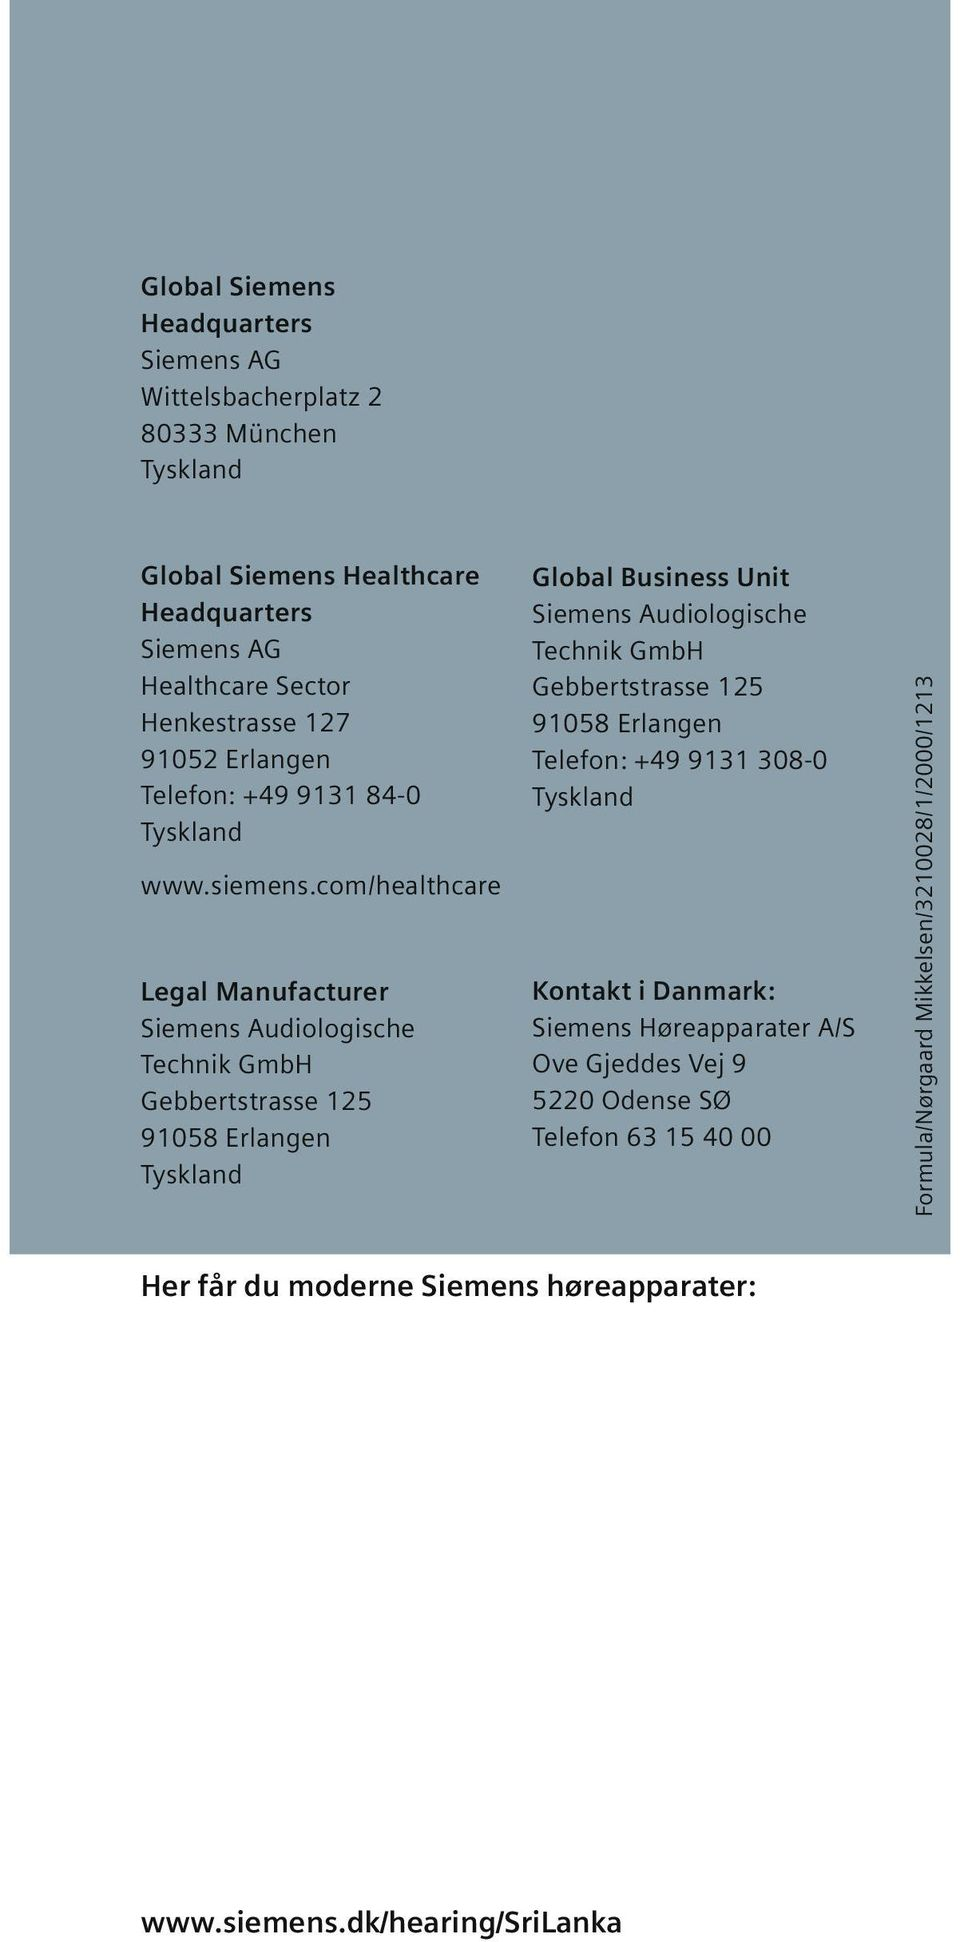 com/healthcare Legal Manufacturer Siemens Audiologische Technik GmbH Gebbertstrasse 125 91058 Erlangen Global Business Unit Siemens Audiologische Technik GmbH